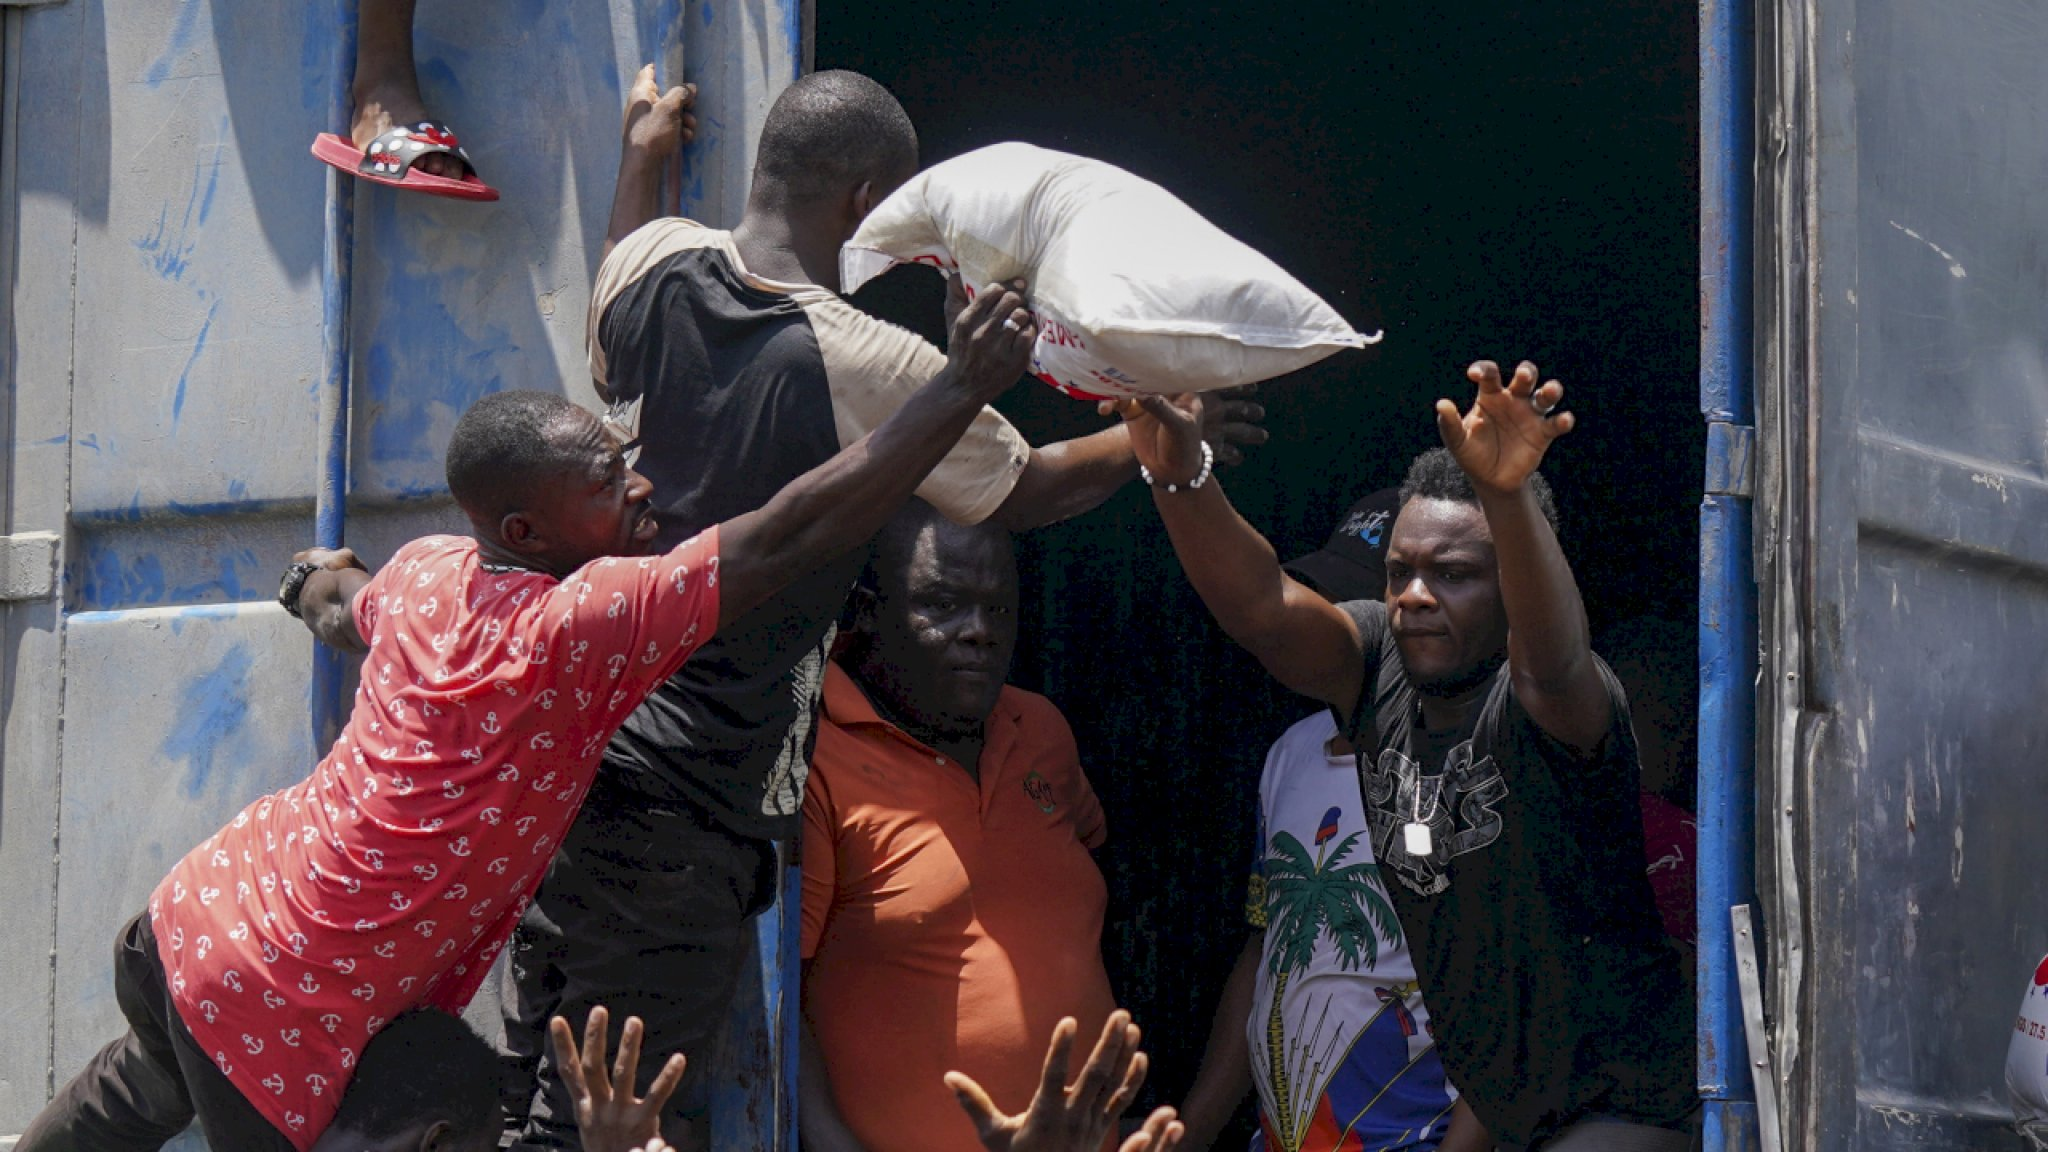 Desperate Haitians steal food and tents from aid convoy